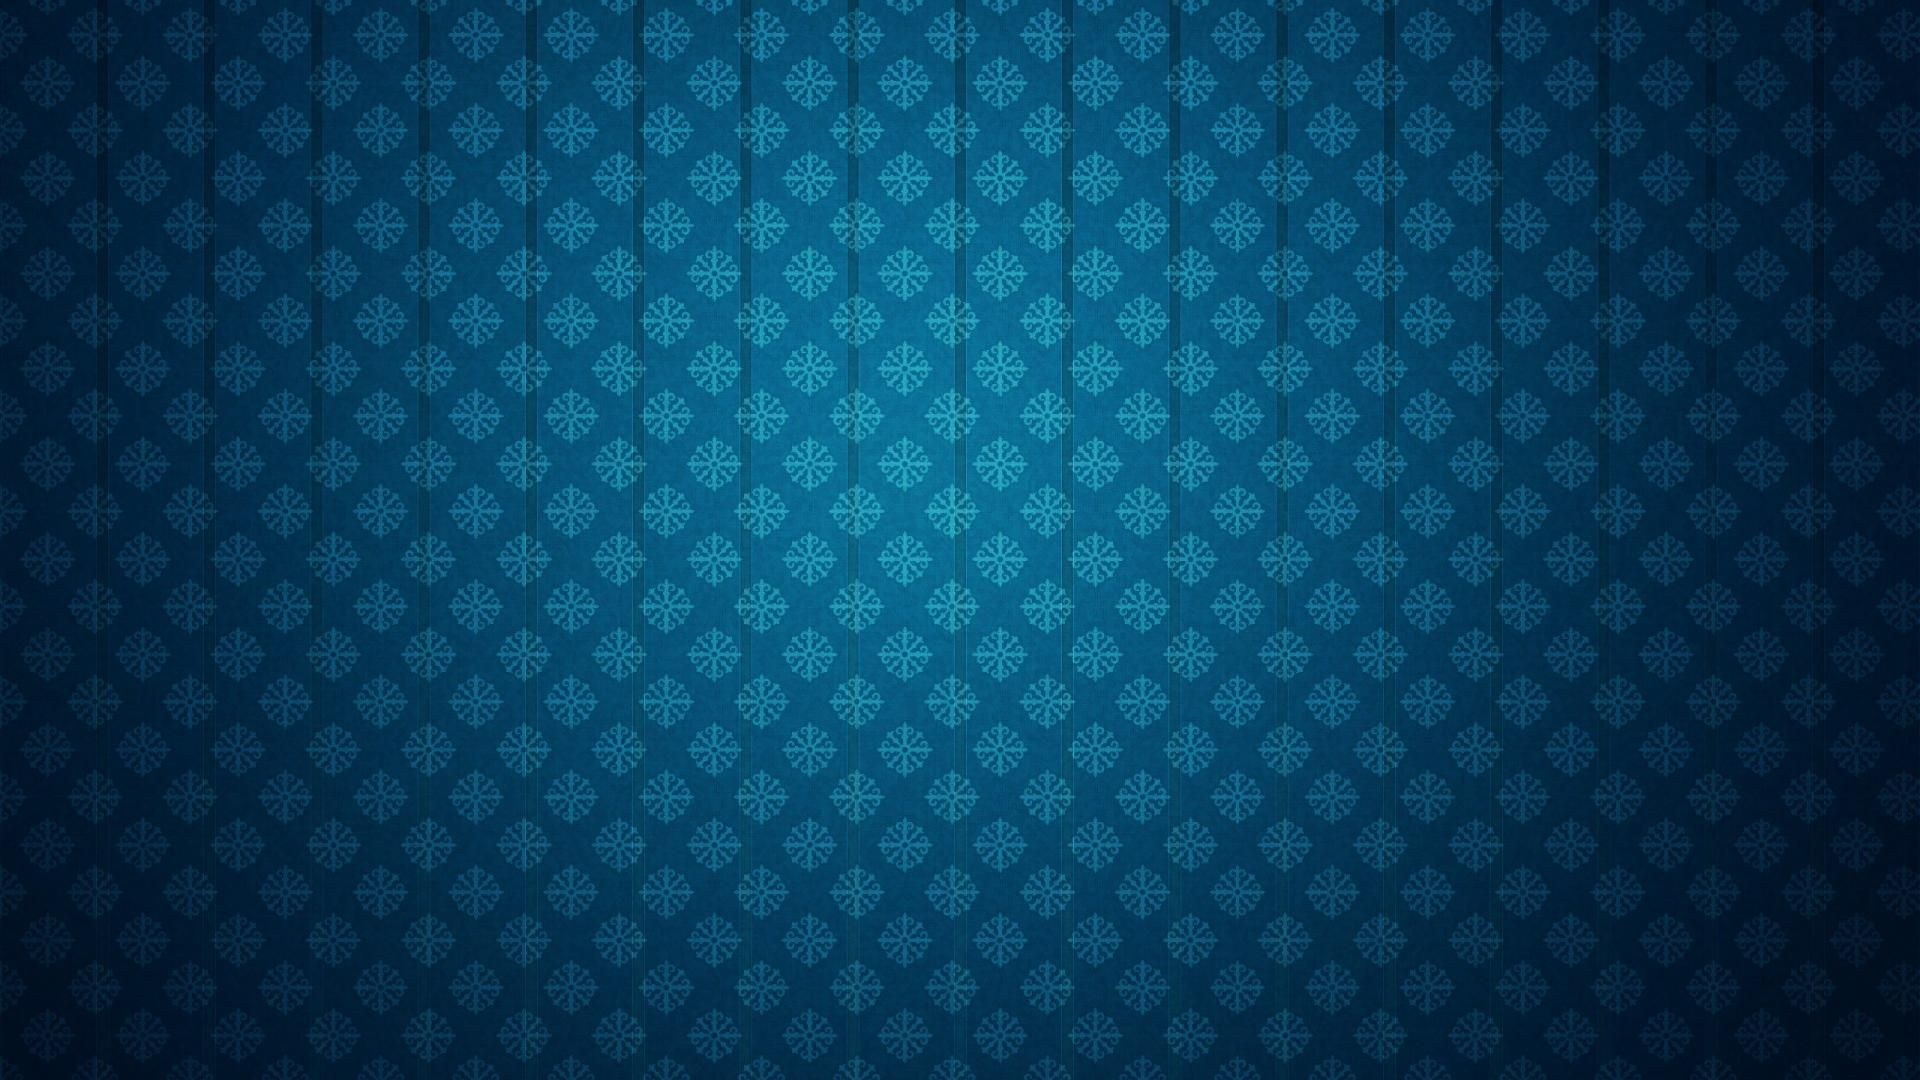 Blue Background Hd Designs 1920x1080 Abstract Beautiful Blue Design